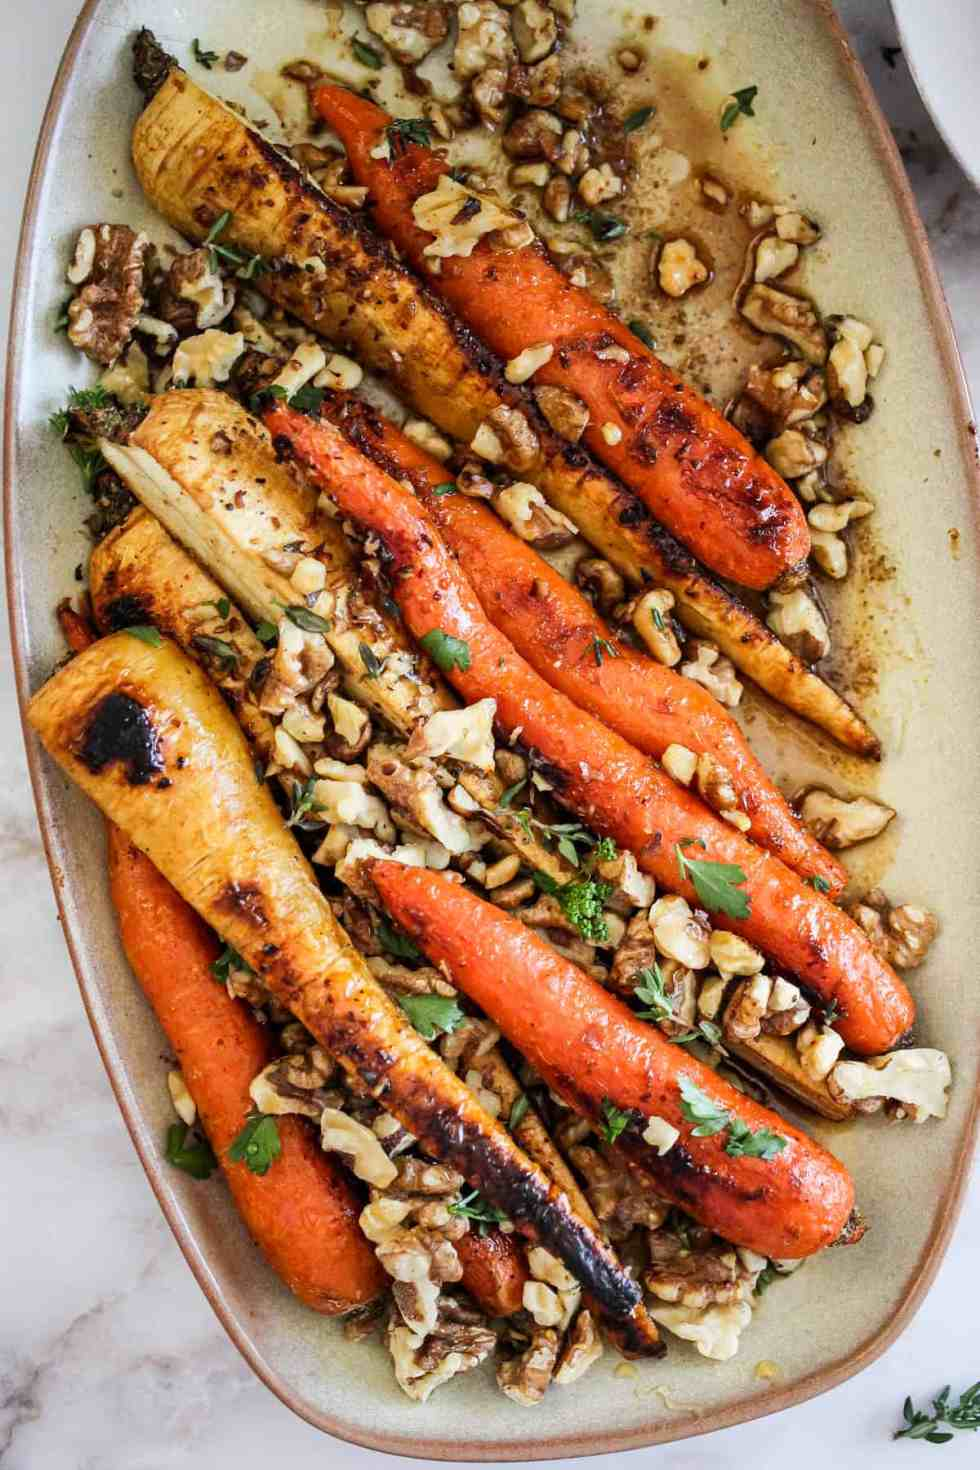 Overhead image of roasted carrots and parsnips on a beige serving platter.